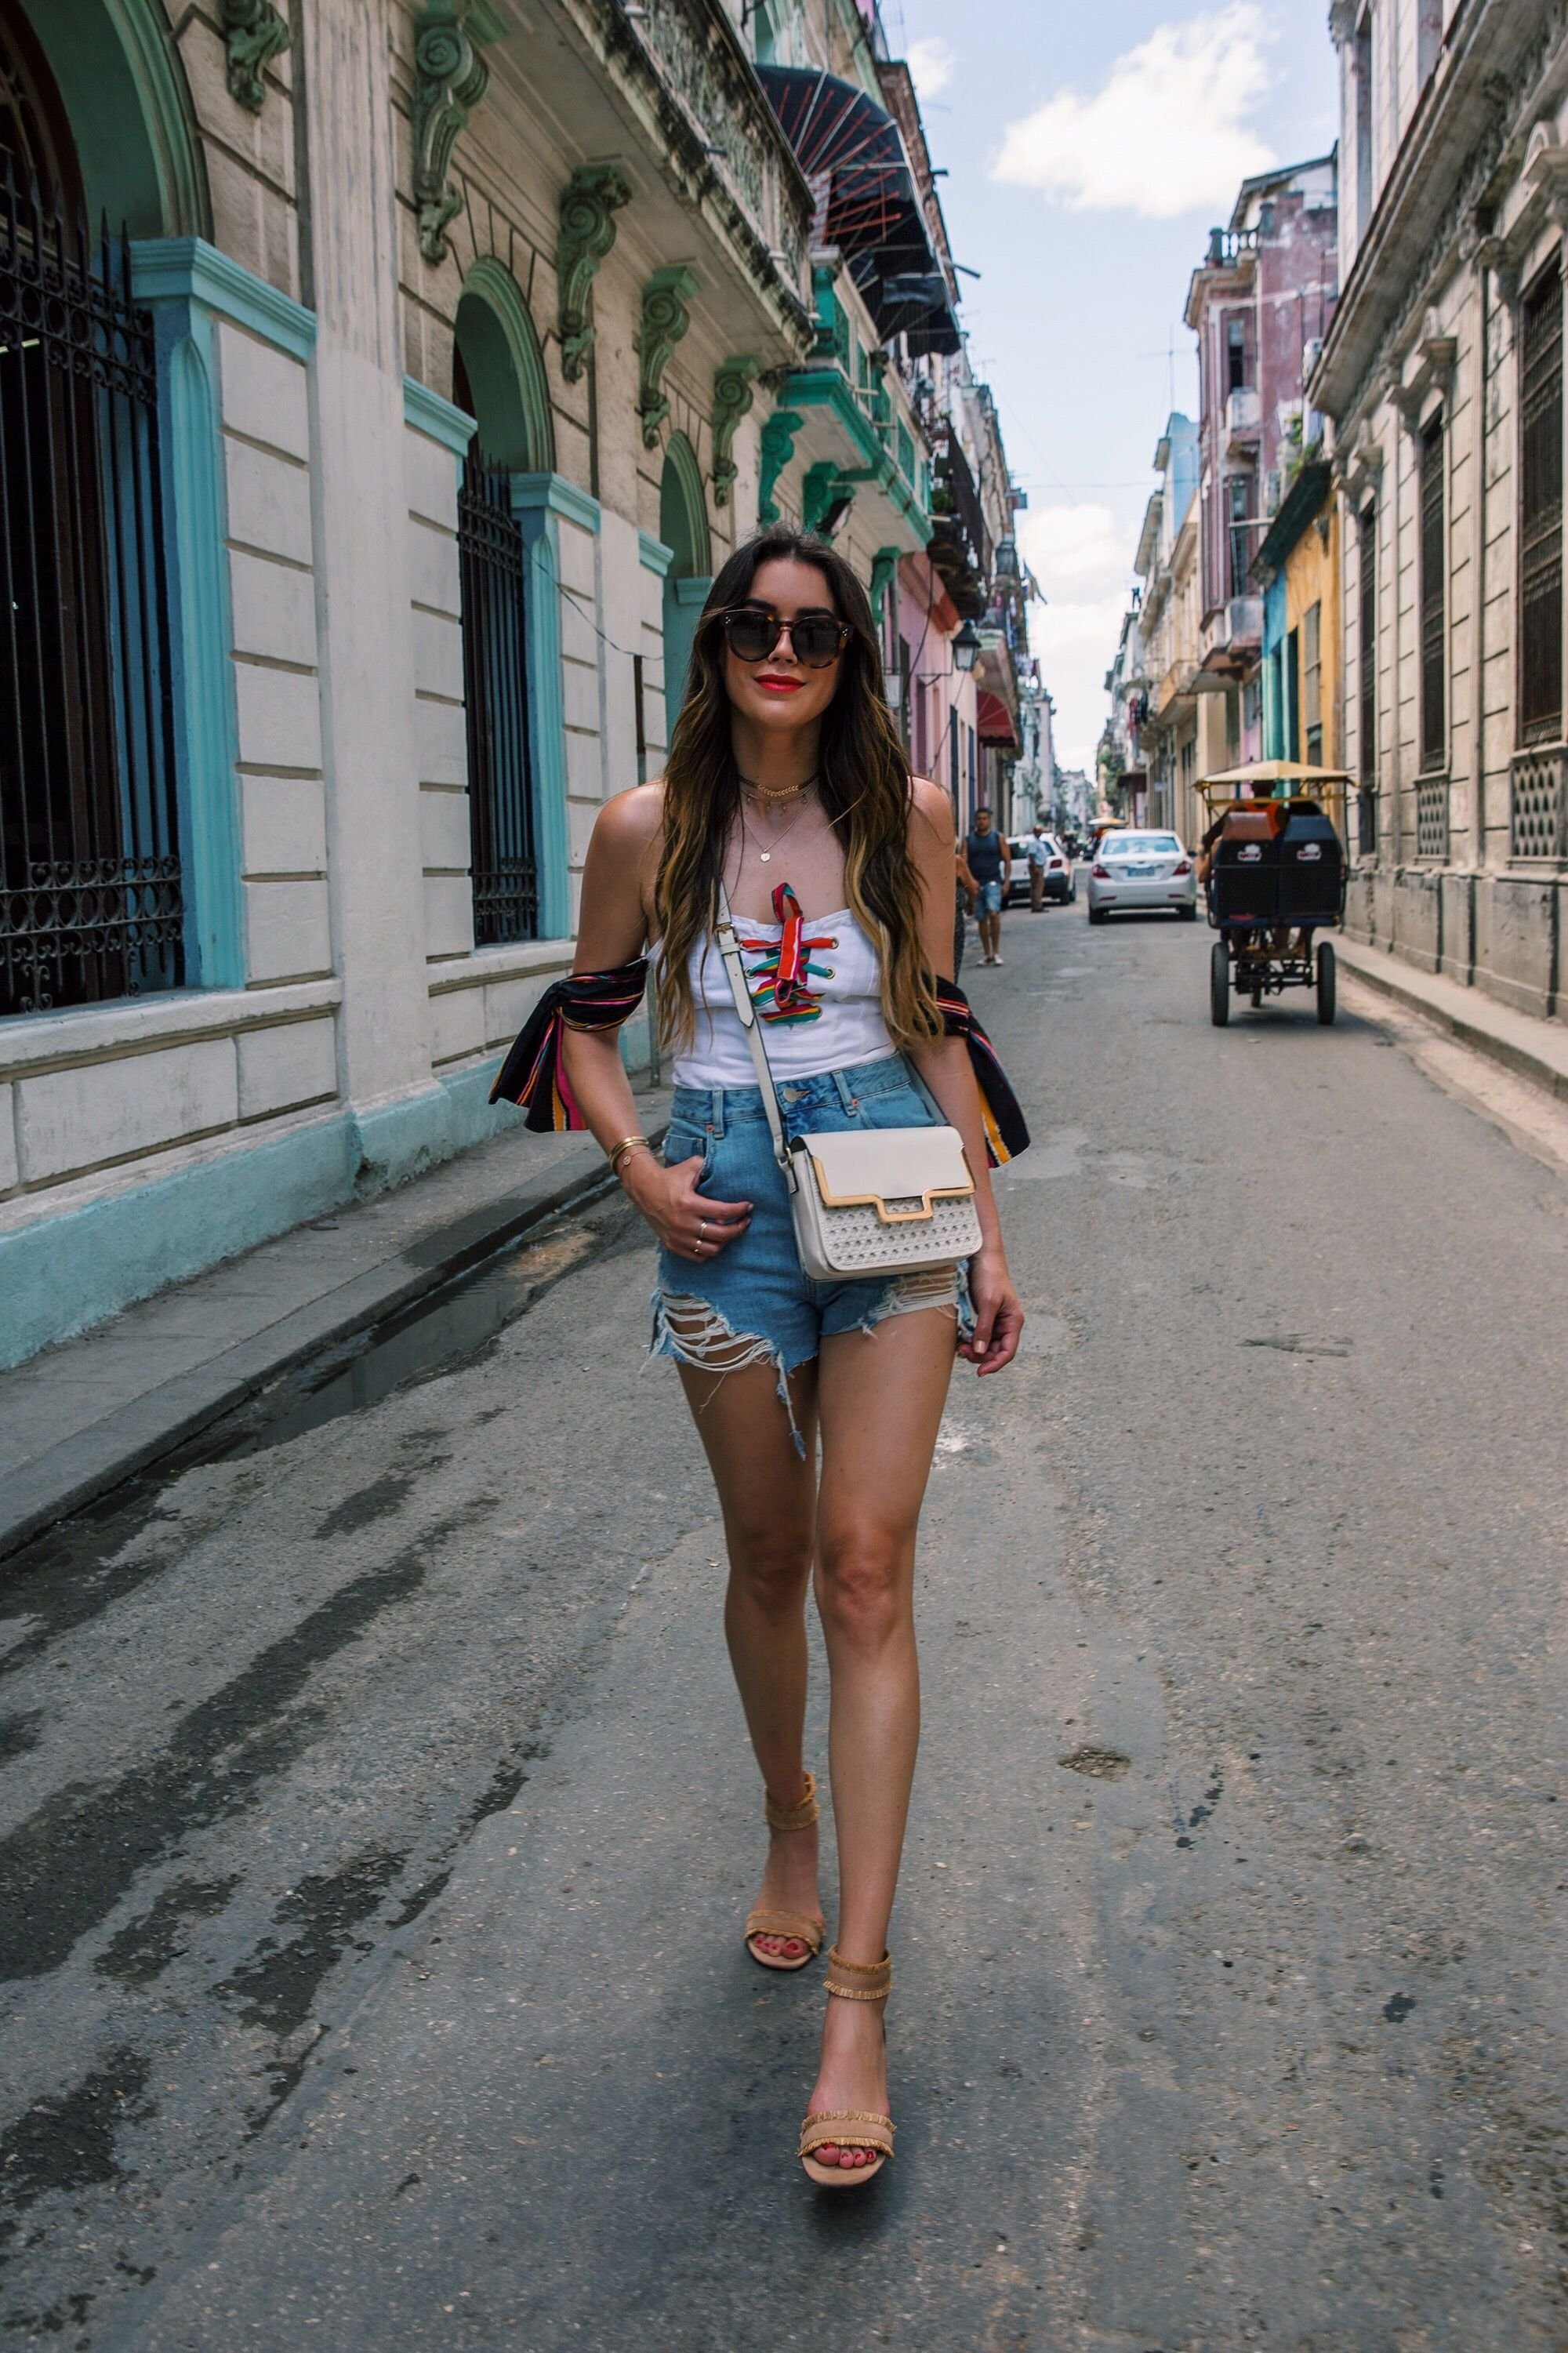 f3b42278 Top+distressed denim shorts+ankle strap sandals+natural coloured crossbody  bag+choker+necklaces+sunglasses. Summer Vacation Outfit 2017